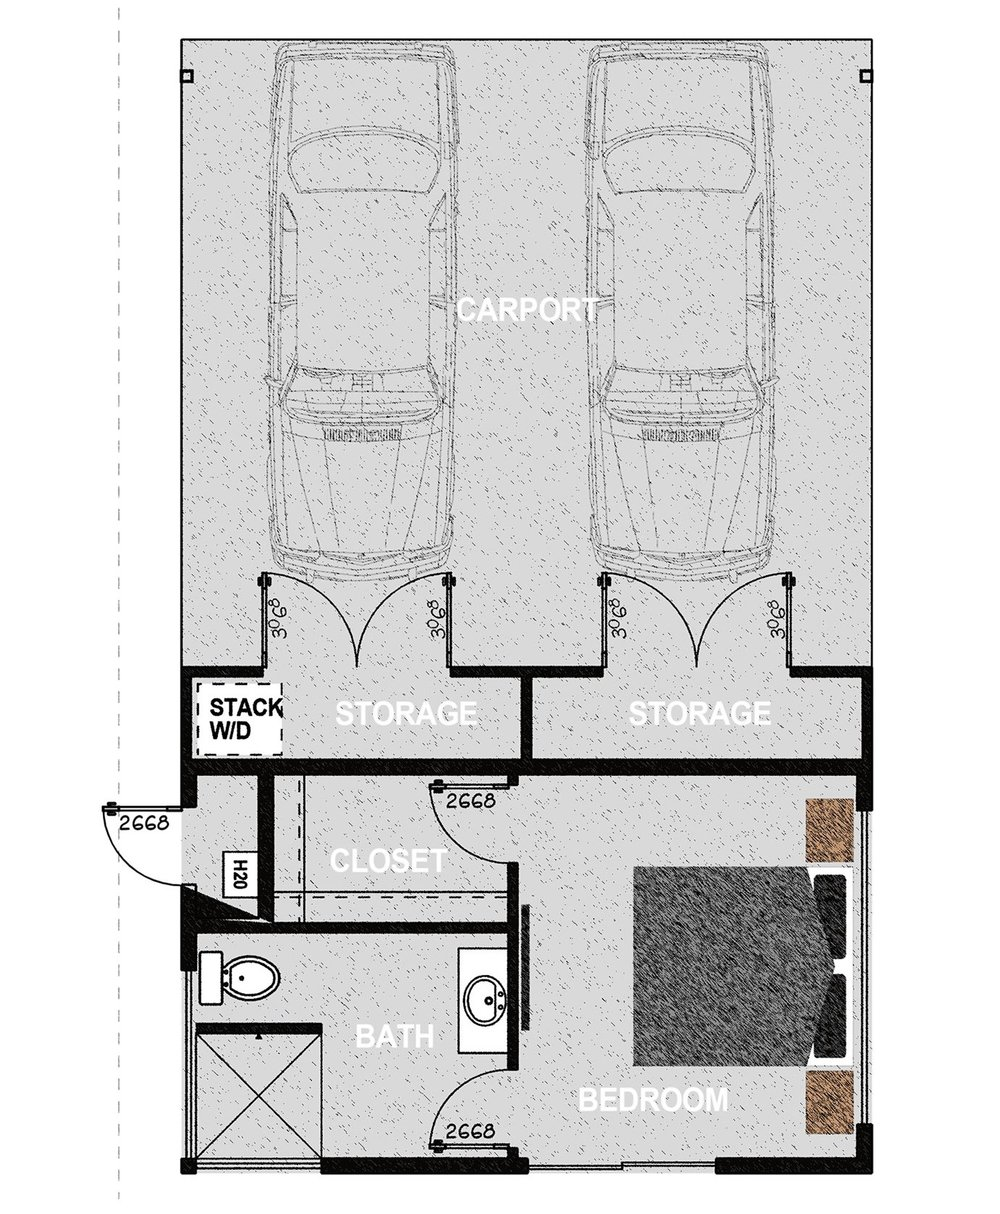 HM288CP - One bedroom and one bathroom with attached carport in 288 sq.ft. of conditioned living space and consists of parking for two vehicles and two ample storage closets. It offers approximately 785 square feet of covered parking on a 510 square foot concrete slab.Additionally, it offers 288 square feet of conditioned living space consisting of one bedroom, one walk in closet, an exterior mechanical room, and one bathroom. Exterior dimensions are approximately 22' x 3'Learn More